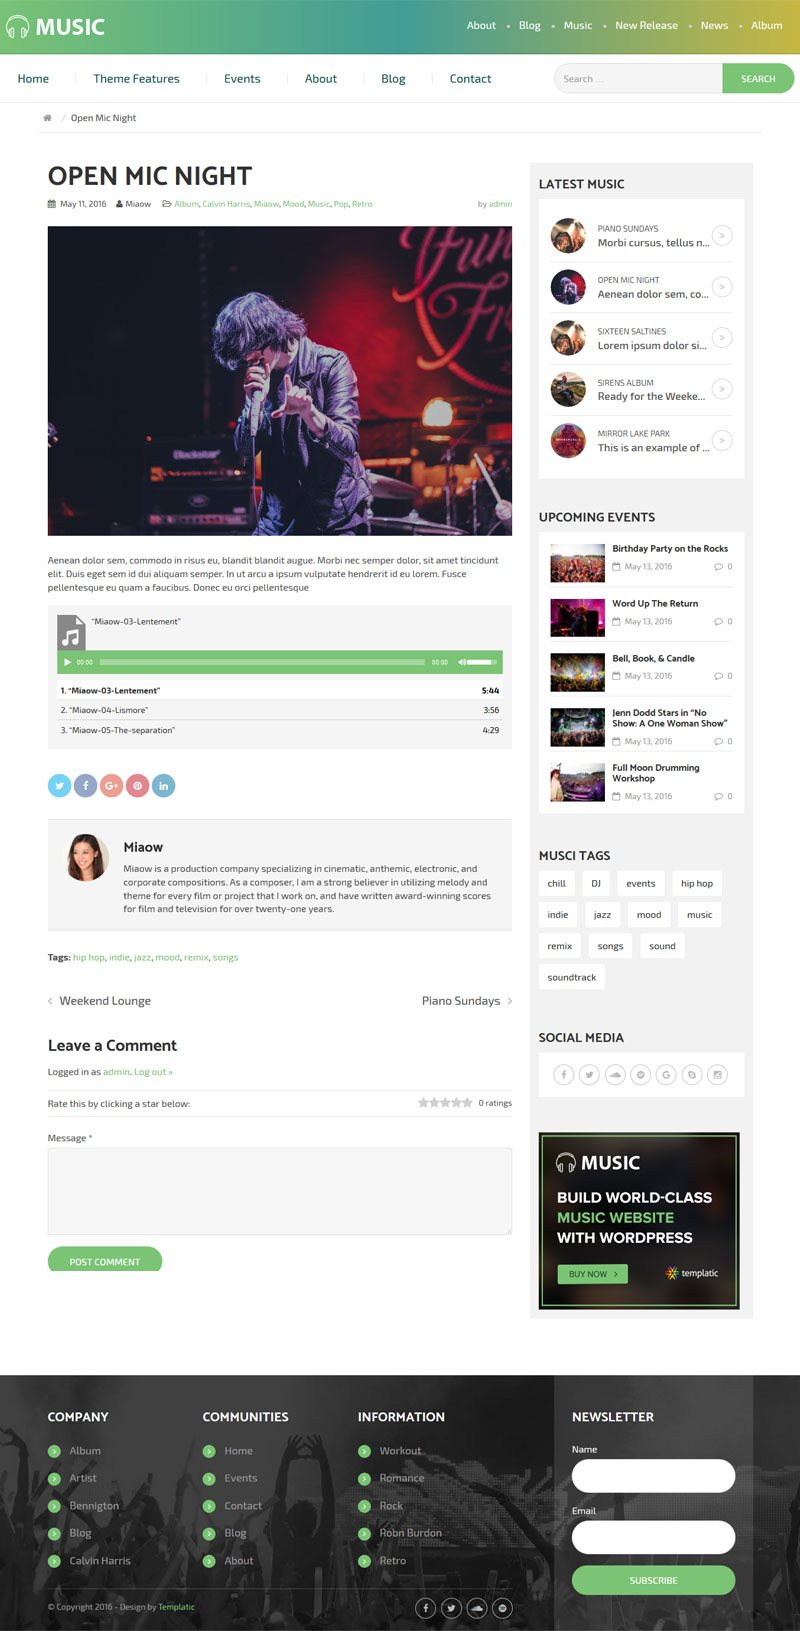 The Music Theme's Blog Post Page